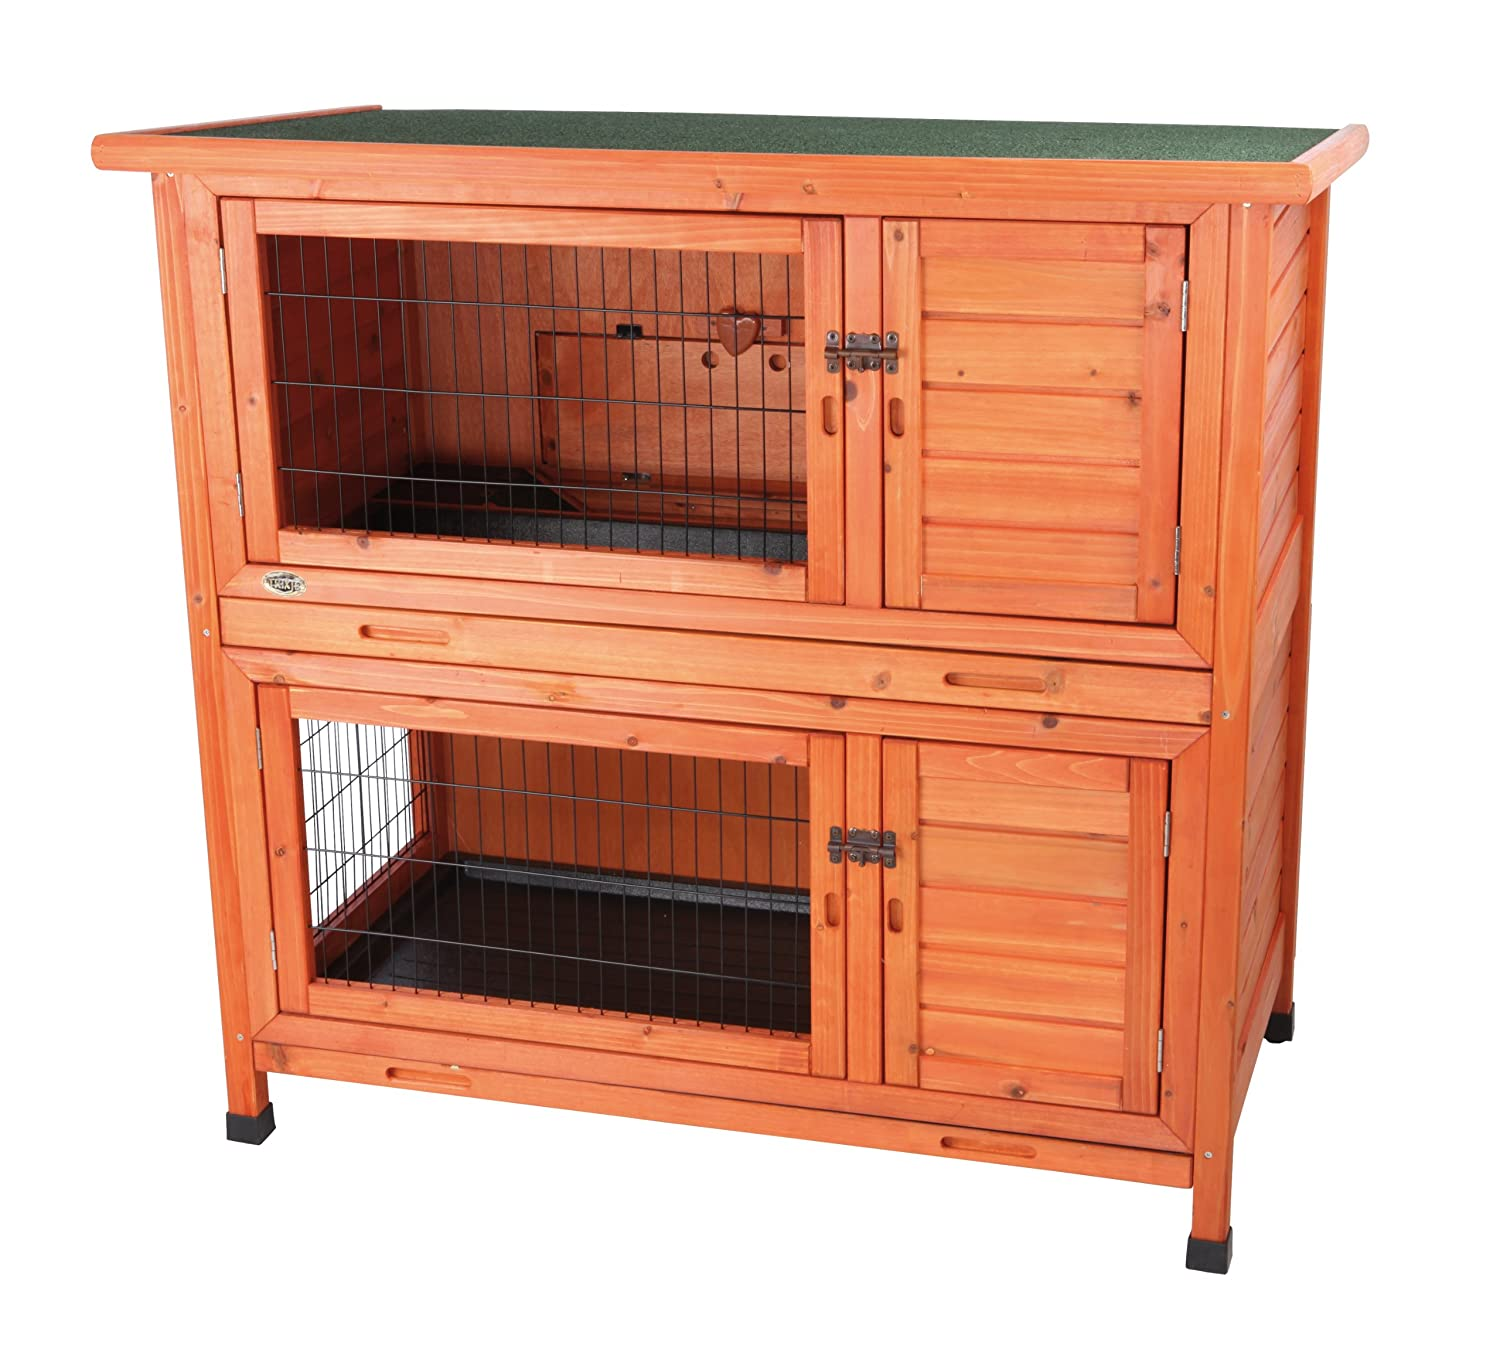 1-Story Rabbit Hutch Trixie Pet Products 62372